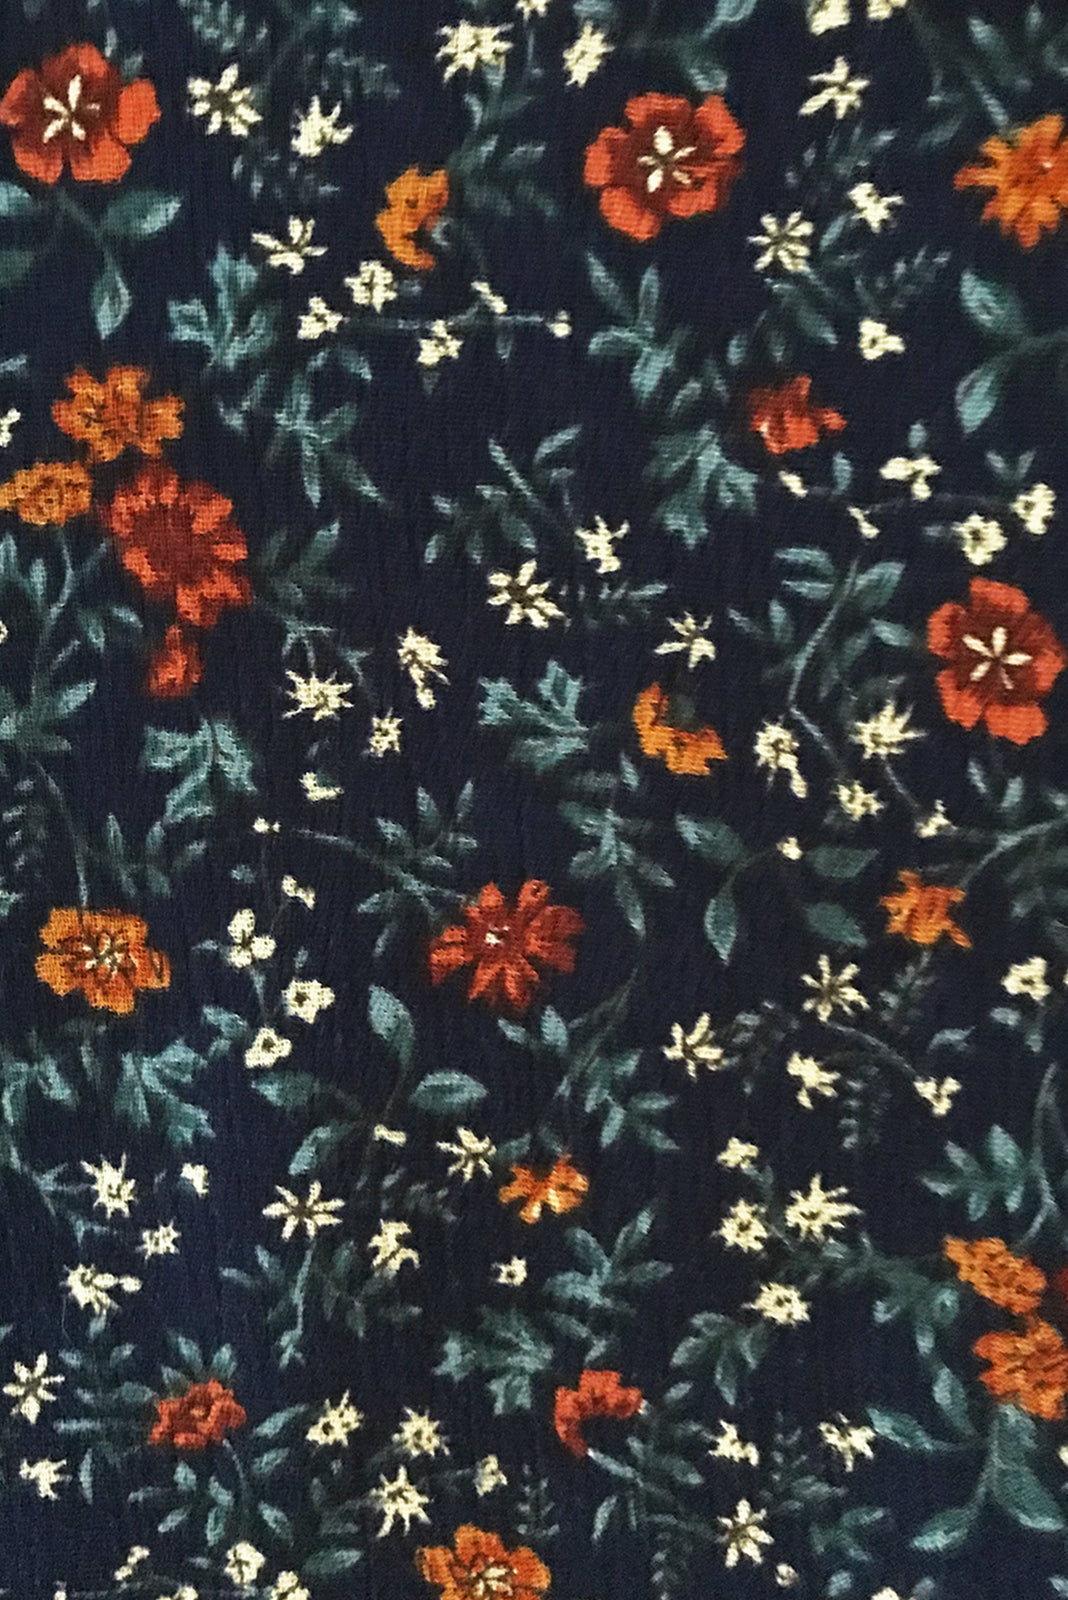 Fabric Swatch of Willow Brae Navy Maxi Dress featuring textured rayon in ink base with vintage floral print.